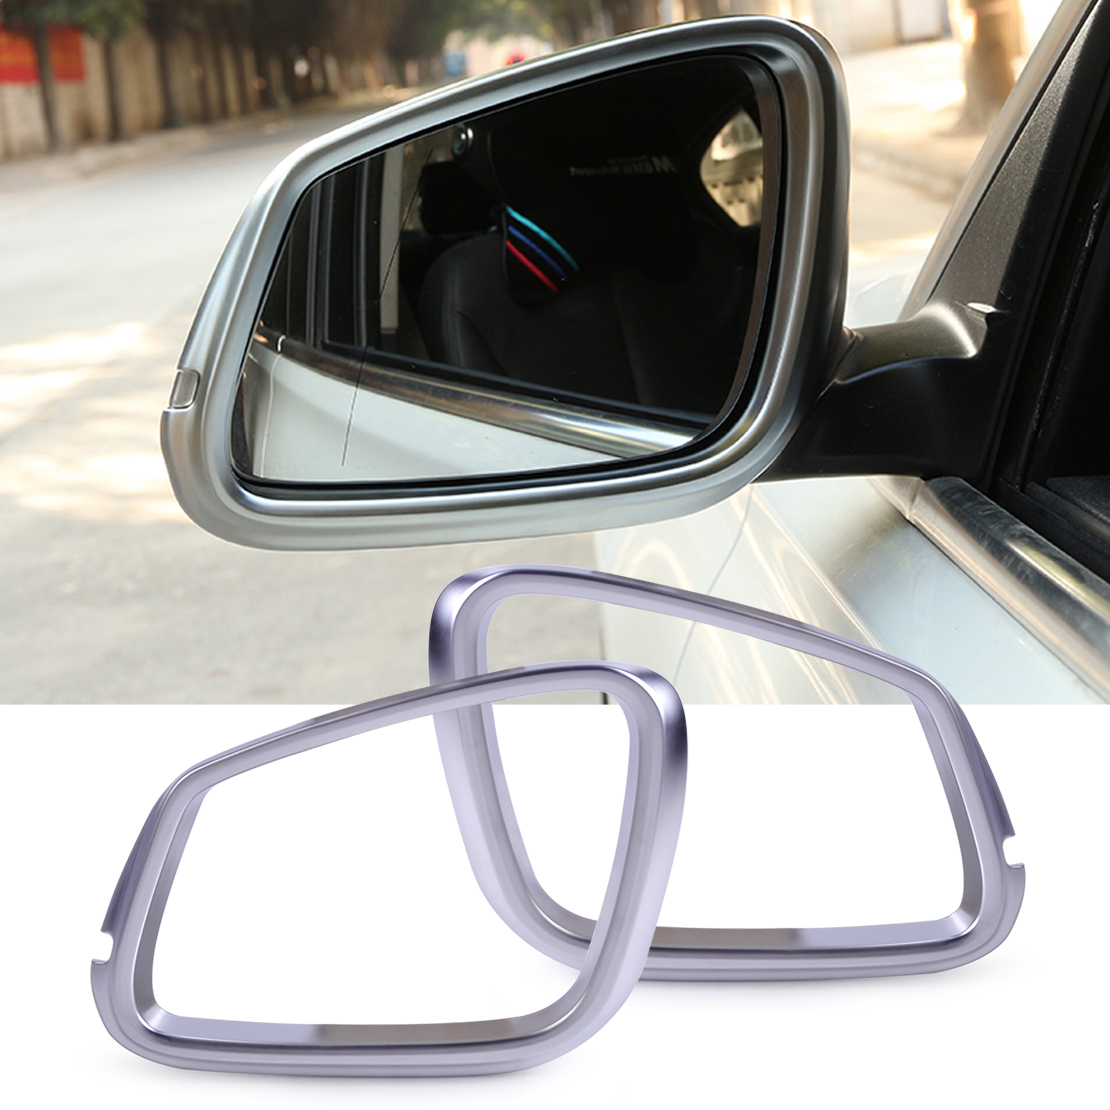 DWCX car styling ABS Matte Chrome Rear View Door Mirror Frame Rearview Cover Trim Rims for